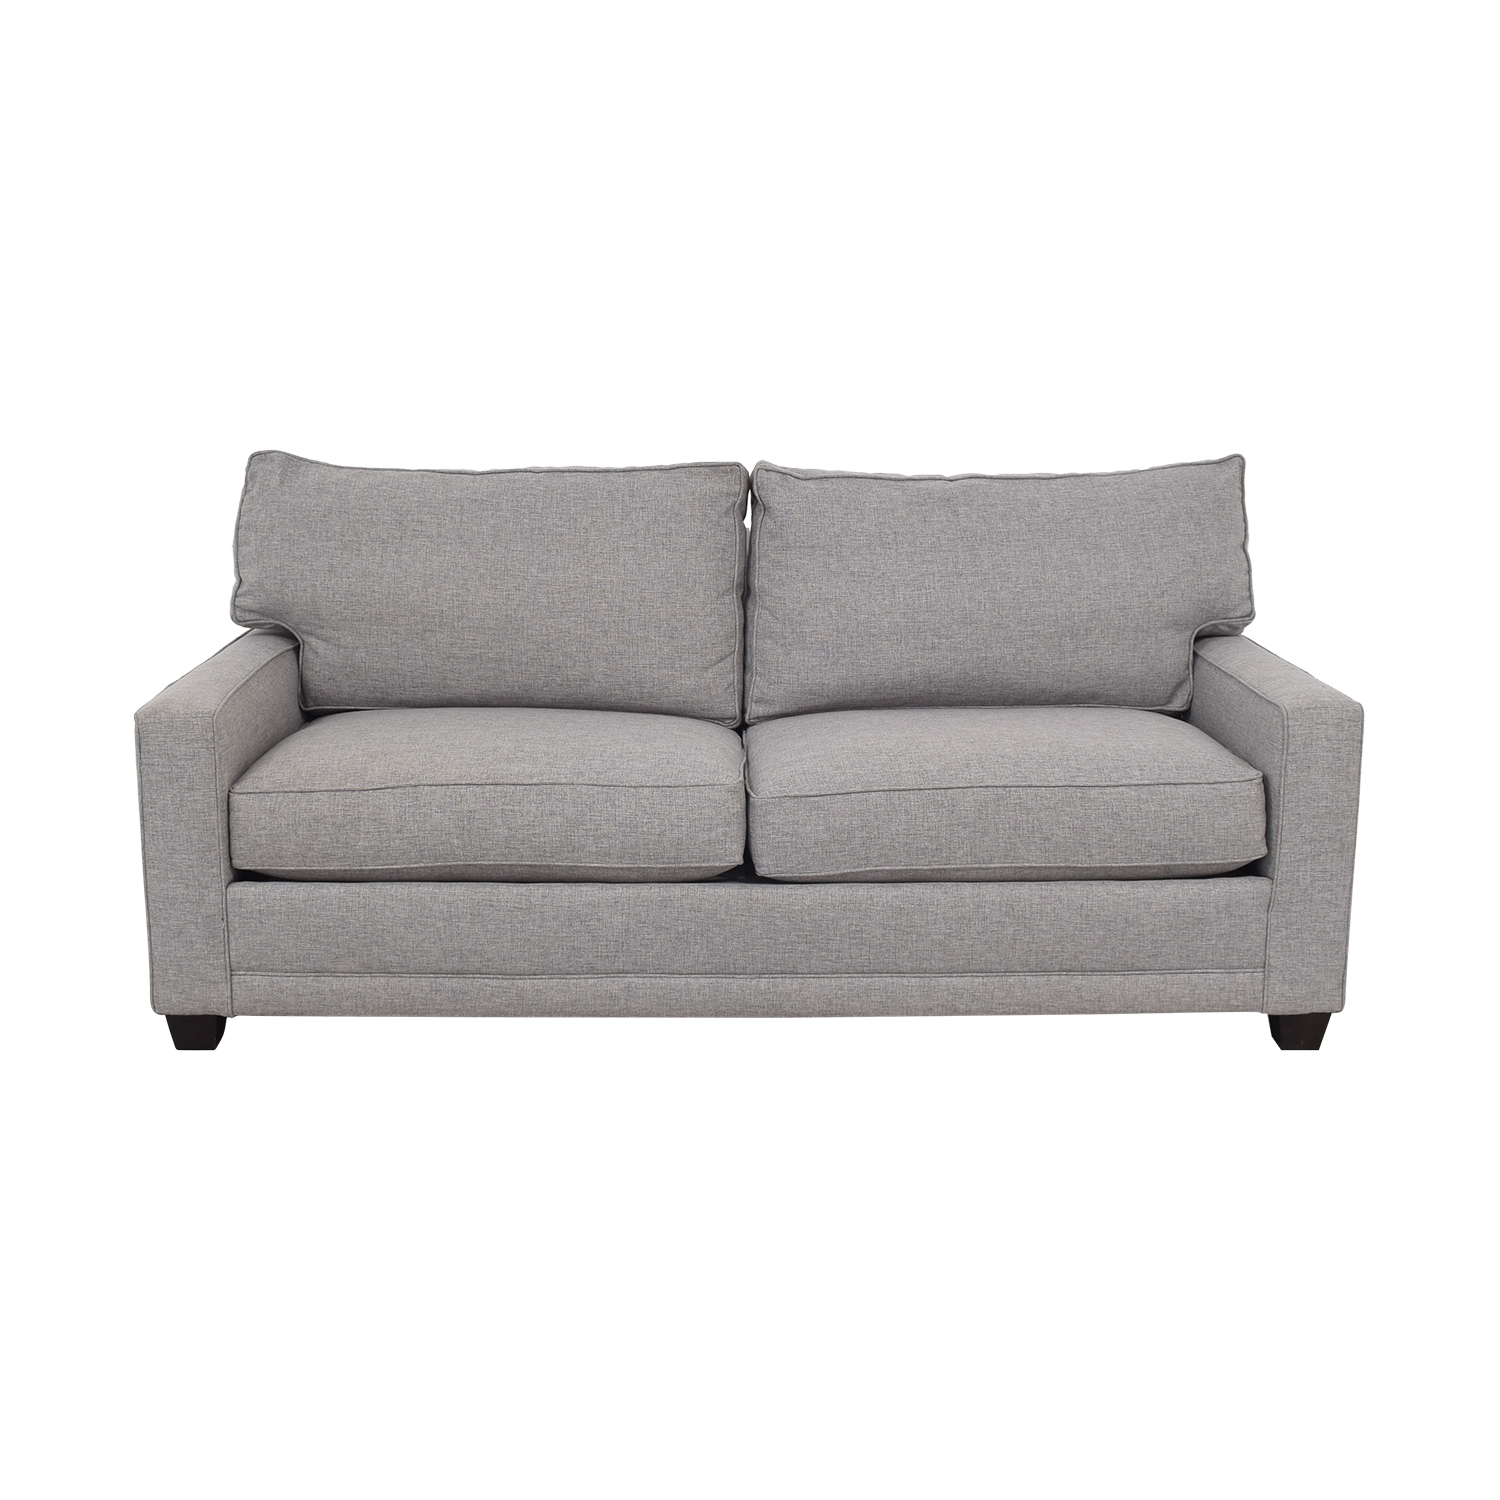 Rowe Furniture Custom Sofa sale